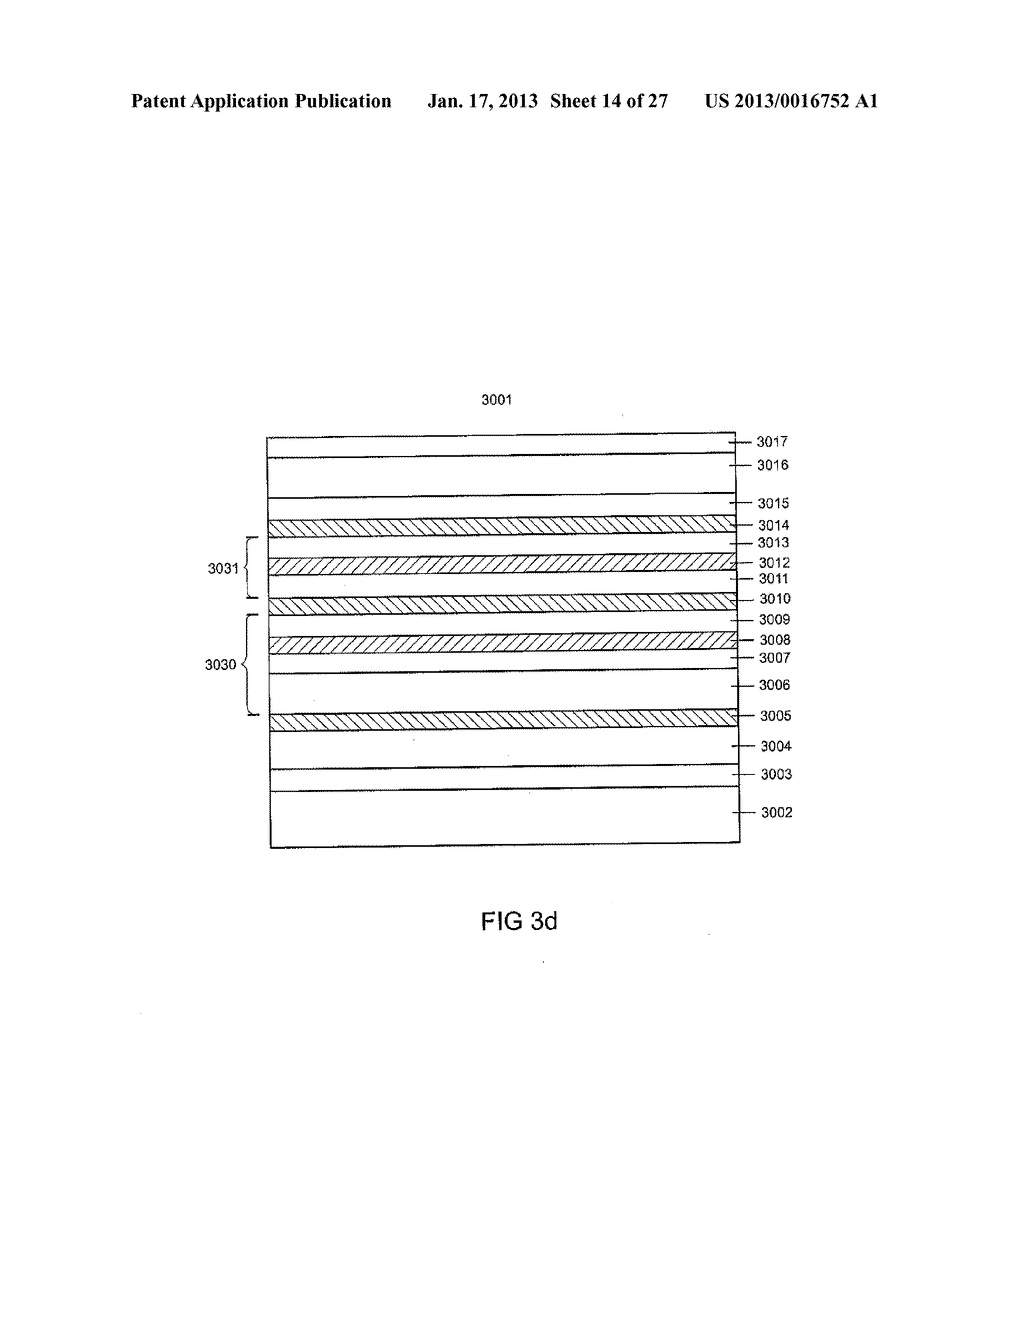 Laser Diode Assembly and Method for Producing a Laser Diode AssemblyAANM Lell; AlfredAACI Maxhutte-HaidhofAACO DEAAGP Lell; Alfred Maxhutte-Haidhof DEAANM Straussburg; MartinAACI DonaustaufAACO DEAAGP Straussburg; Martin Donaustauf DE - diagram, schematic, and image 15